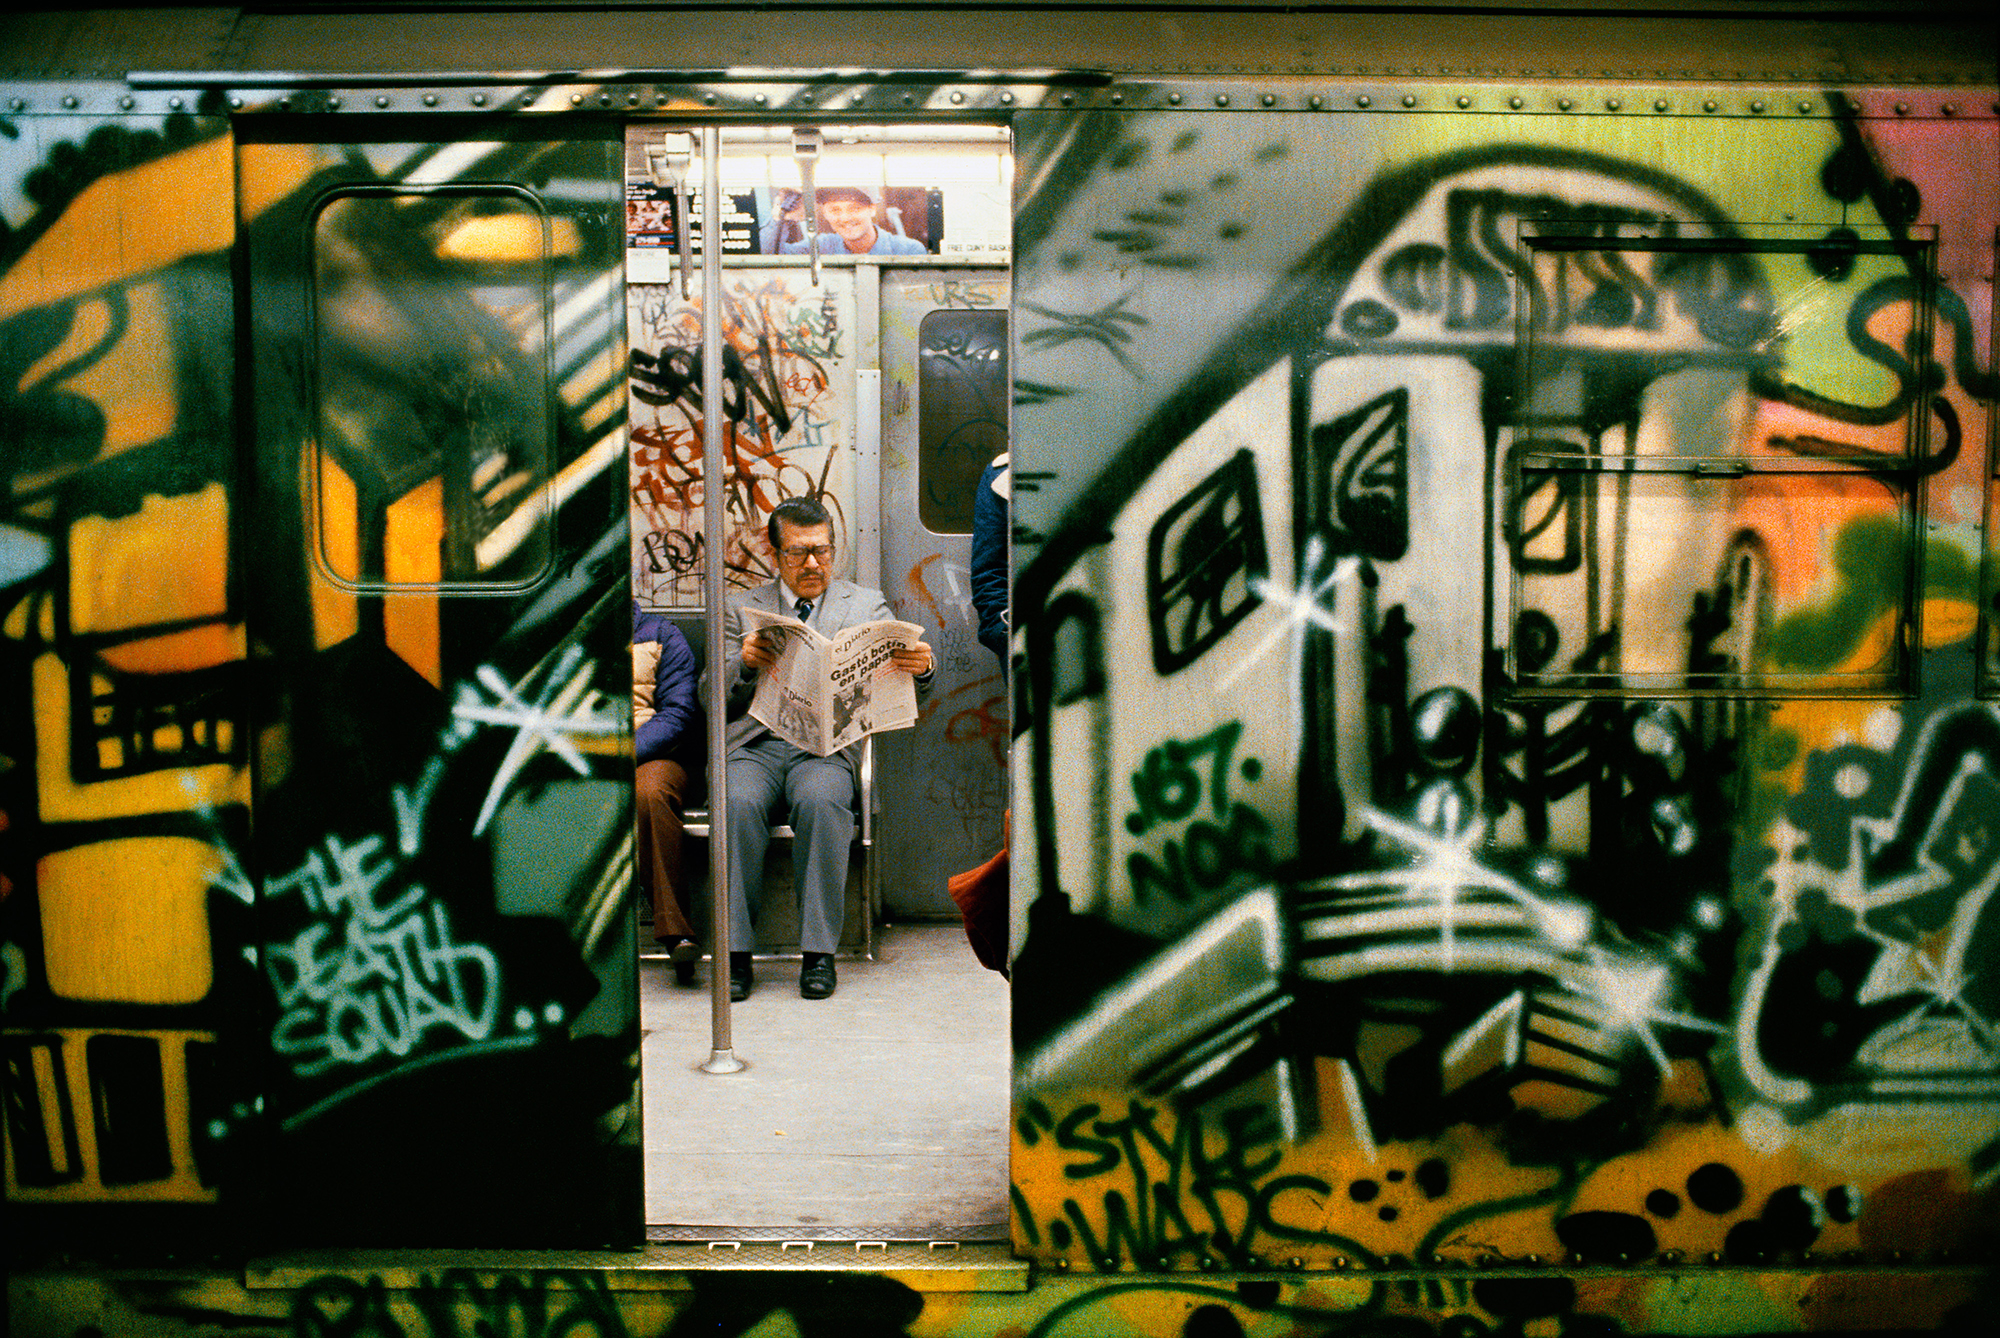 Style Wars Car by NOC 167 with Door Open, Man Reading Newspaper, 96th Street Station, New York, NY, 1981